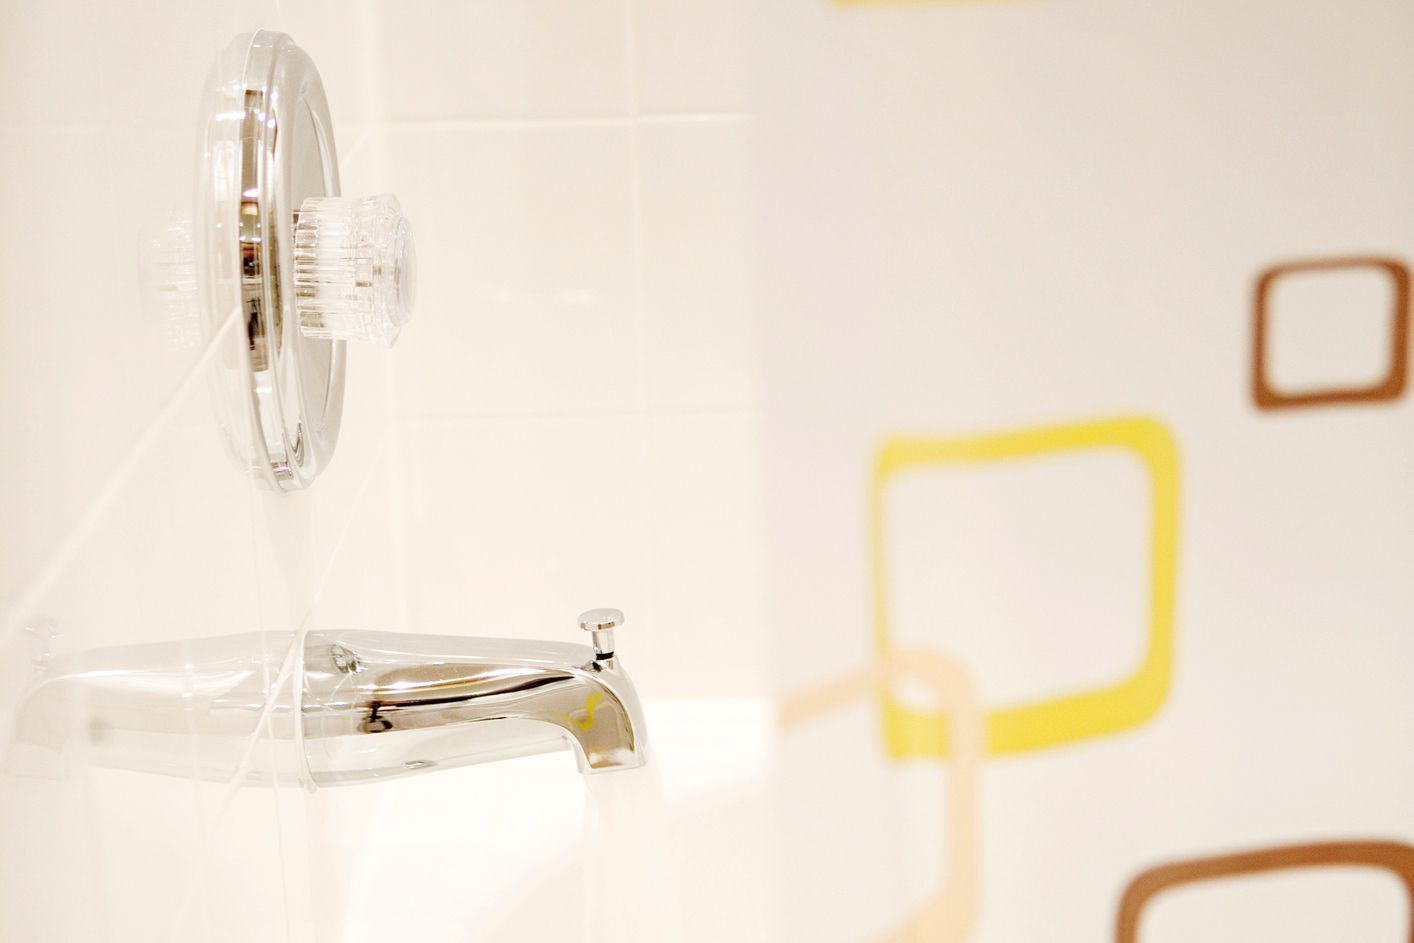 How To Fix A Valley Shower Leak Faucet Repair Together With Moen Parts Diagram As Well